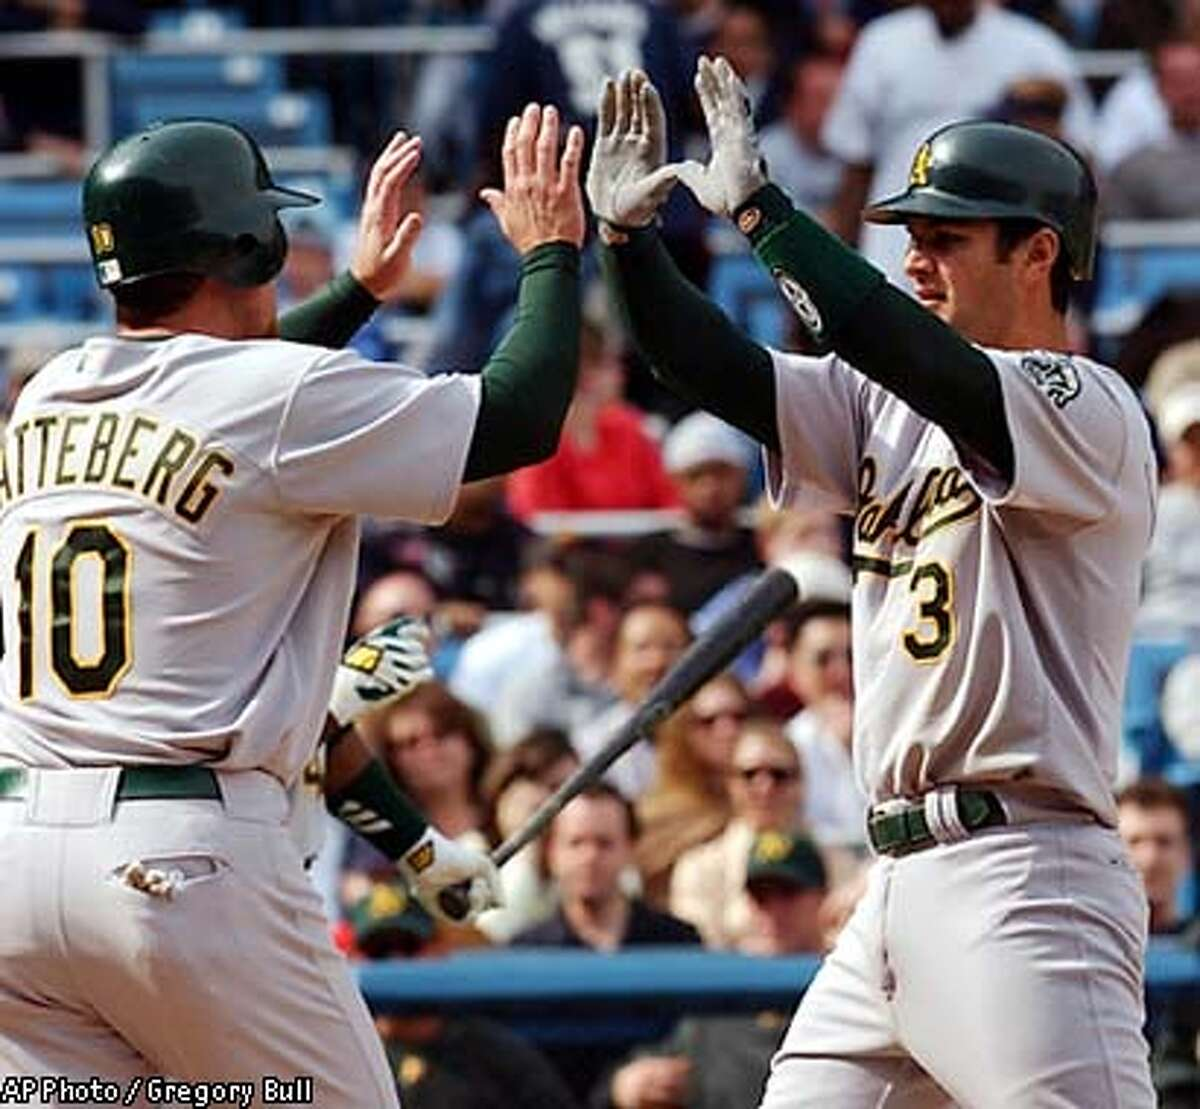 Oakland Athletics' Eric Chavez, right, is congratulated by teammate Scott Hatteberg after his two-run home run in the tenth inning to beat the New York Yankees at Yankee Stadium in New York, Saturday, May 3, 2003. (AP Photo / Gregory Bull)